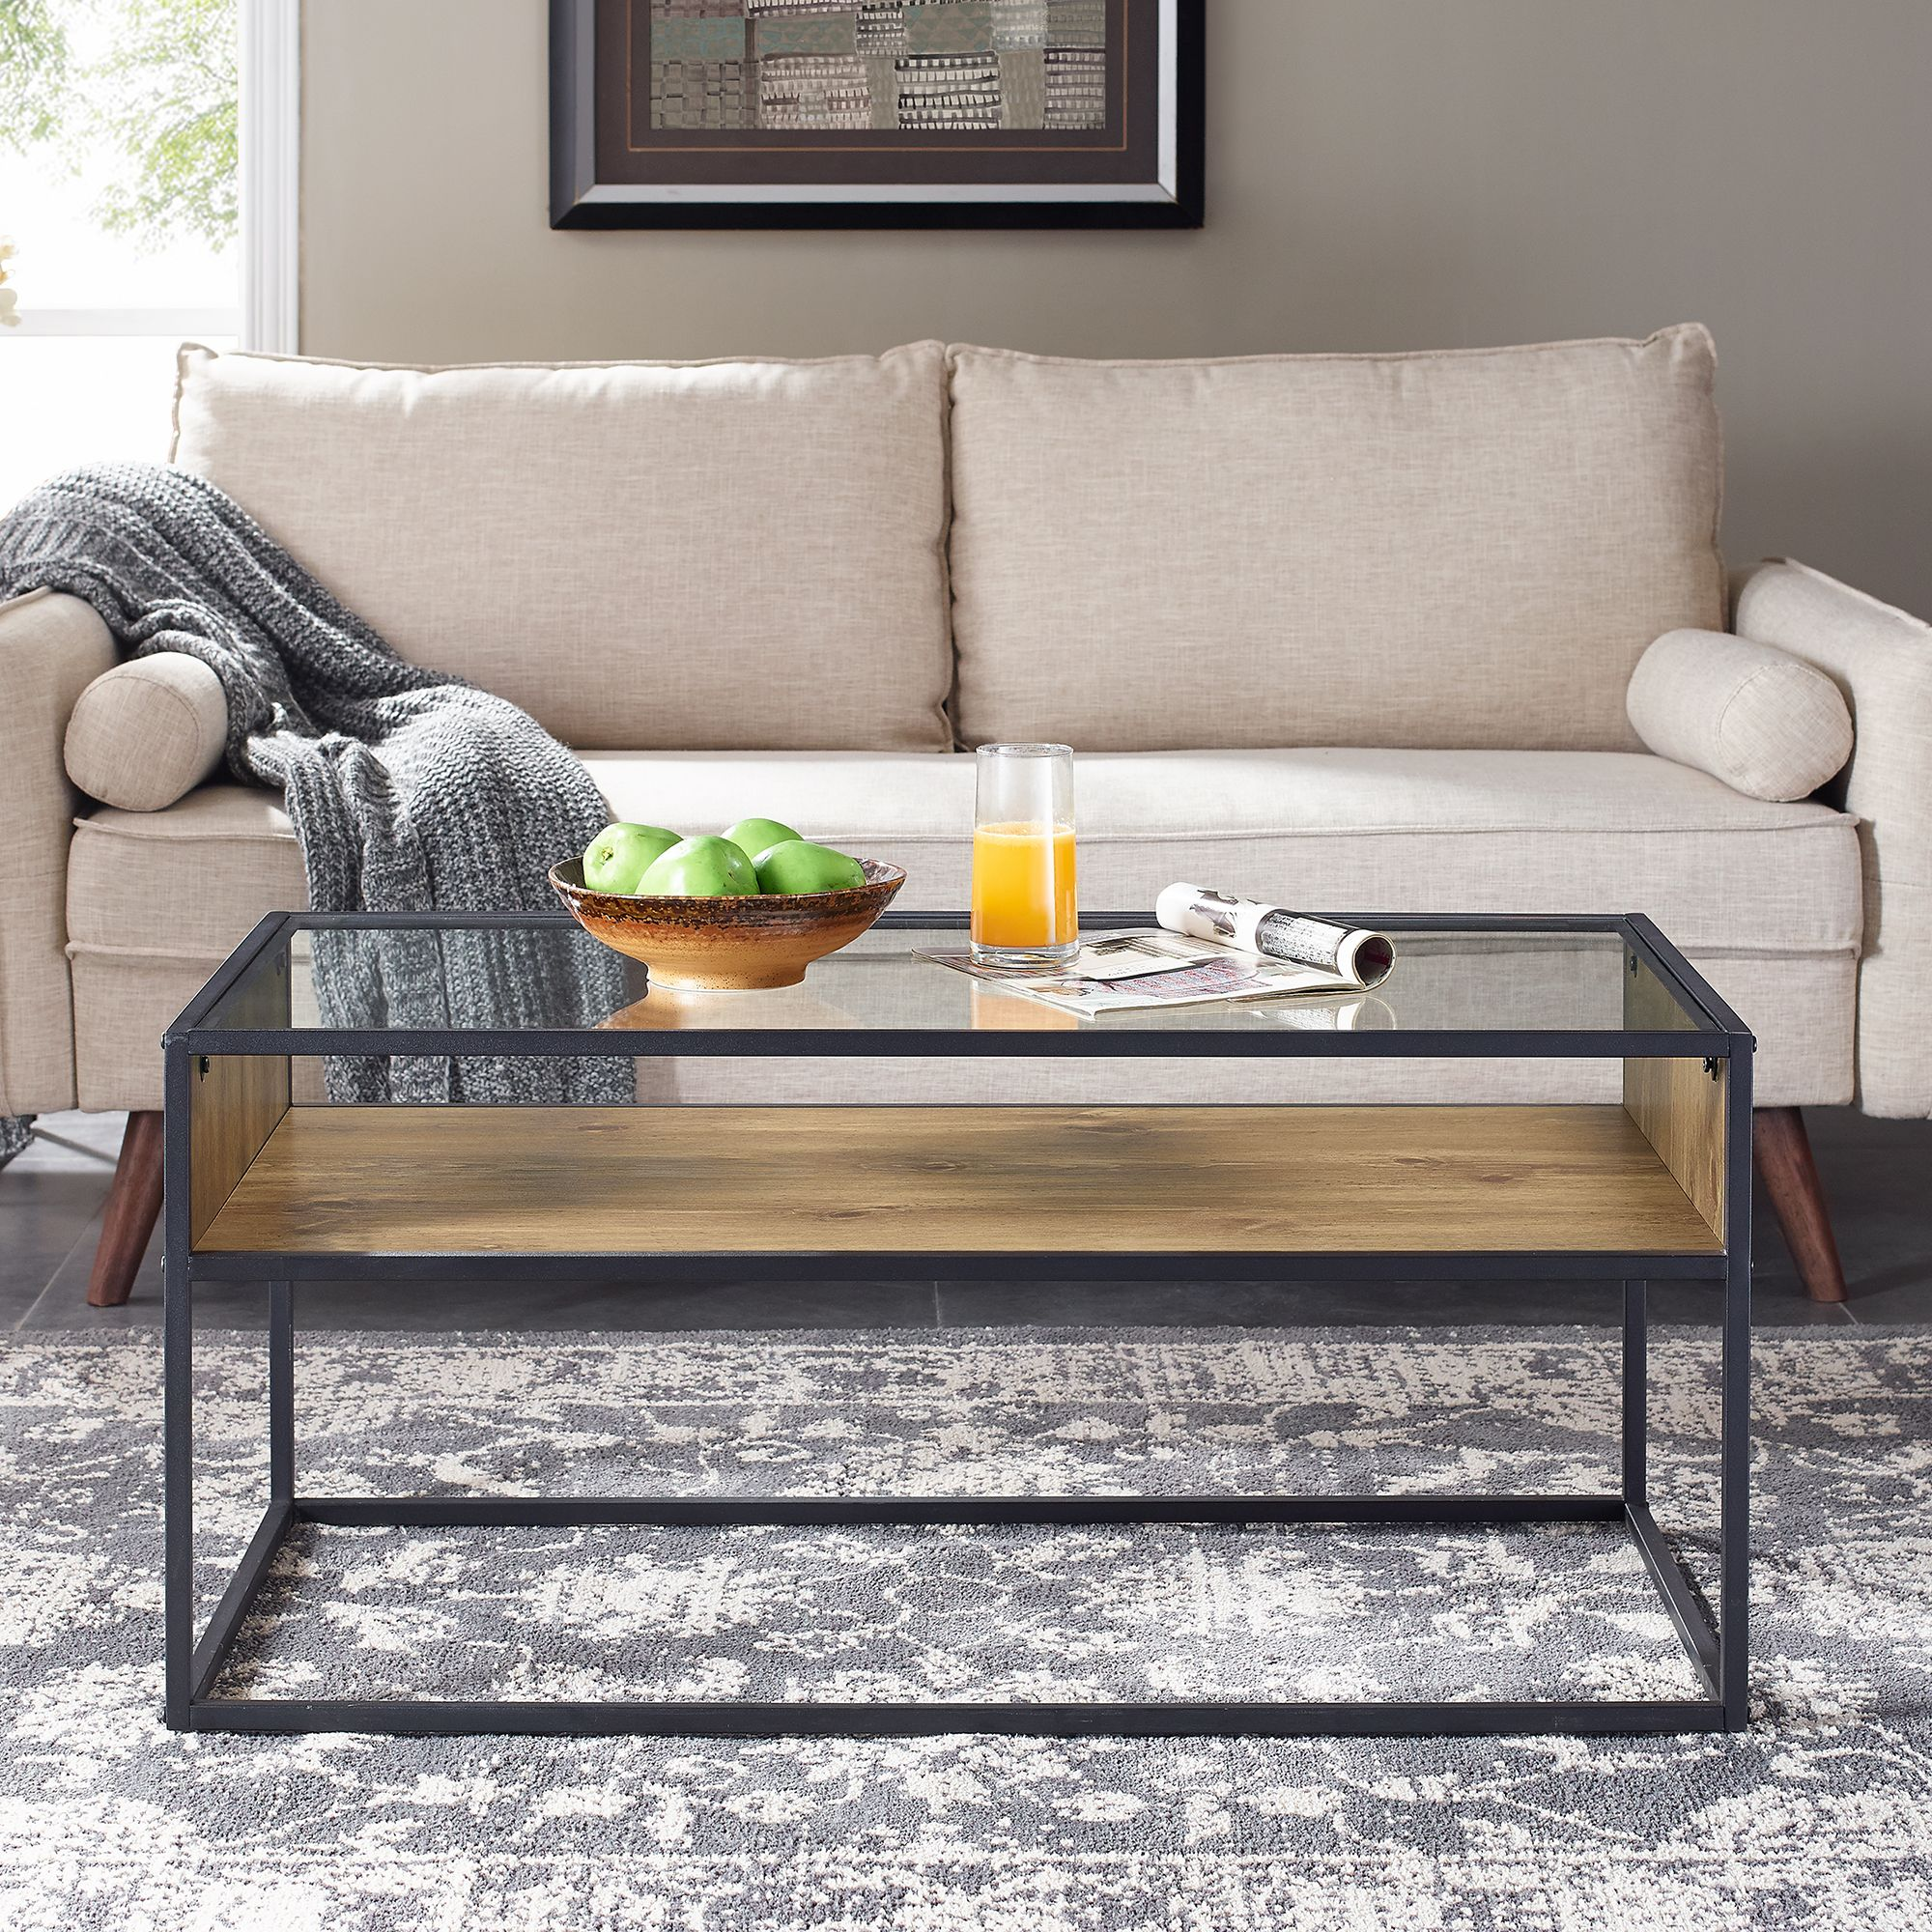 Mainstays Atmore Industrial Glass And Wood Coffee Table Walmart Com Coffee Table Cube Coffee Table Coffee Table Wood [ 2000 x 2000 Pixel ]